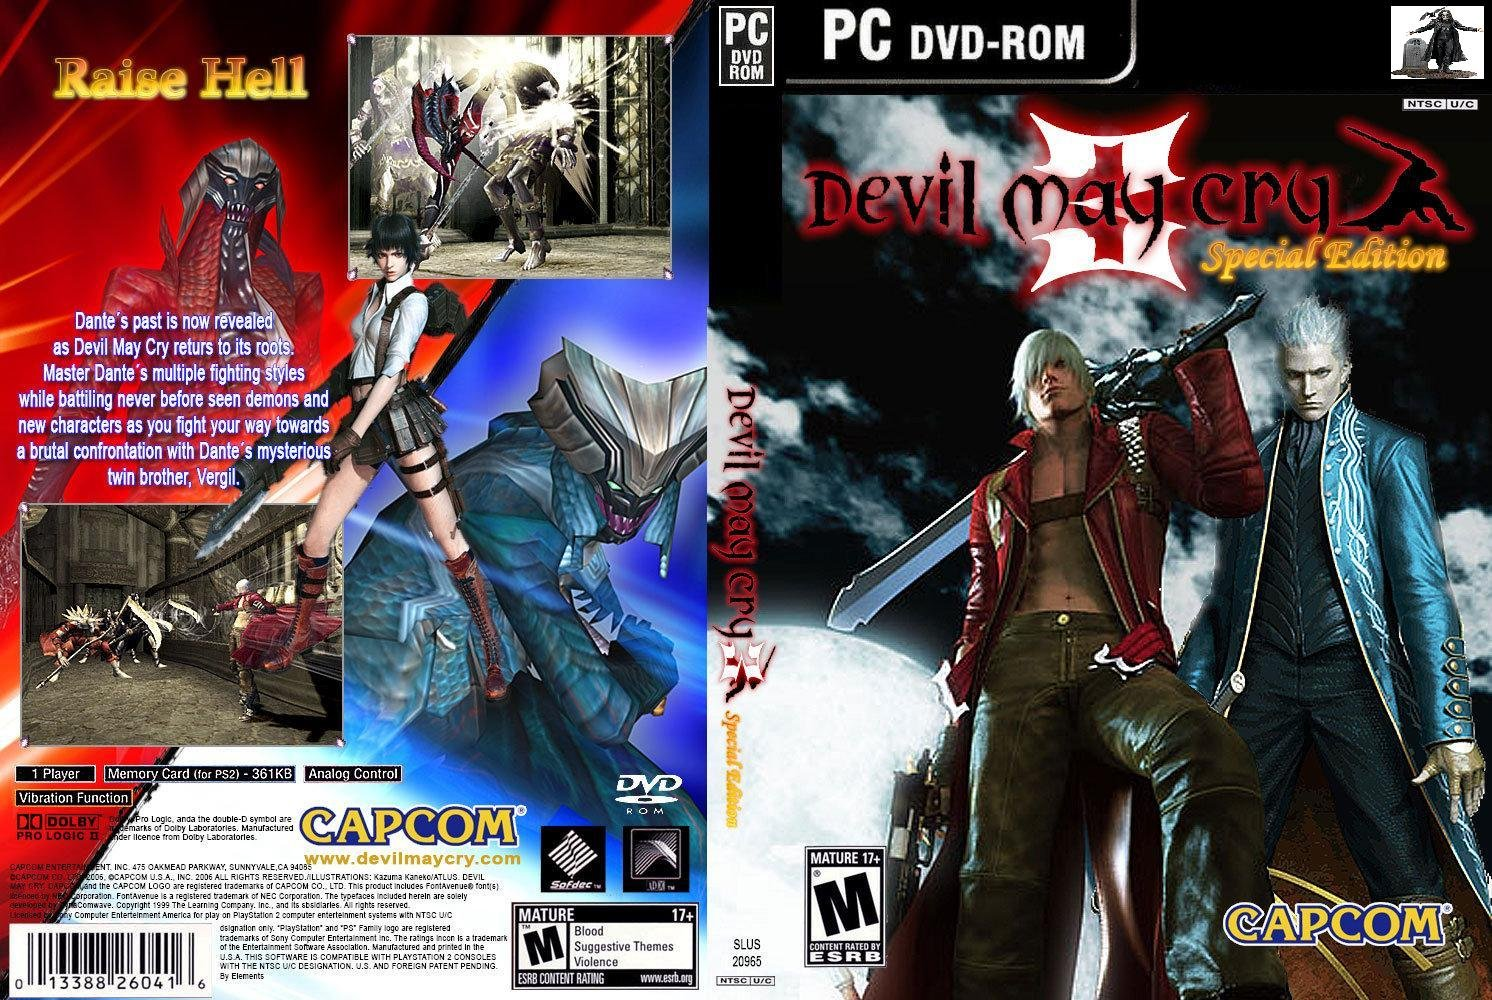 devil may cry 3 escenas de habla/walktrought subs en españo